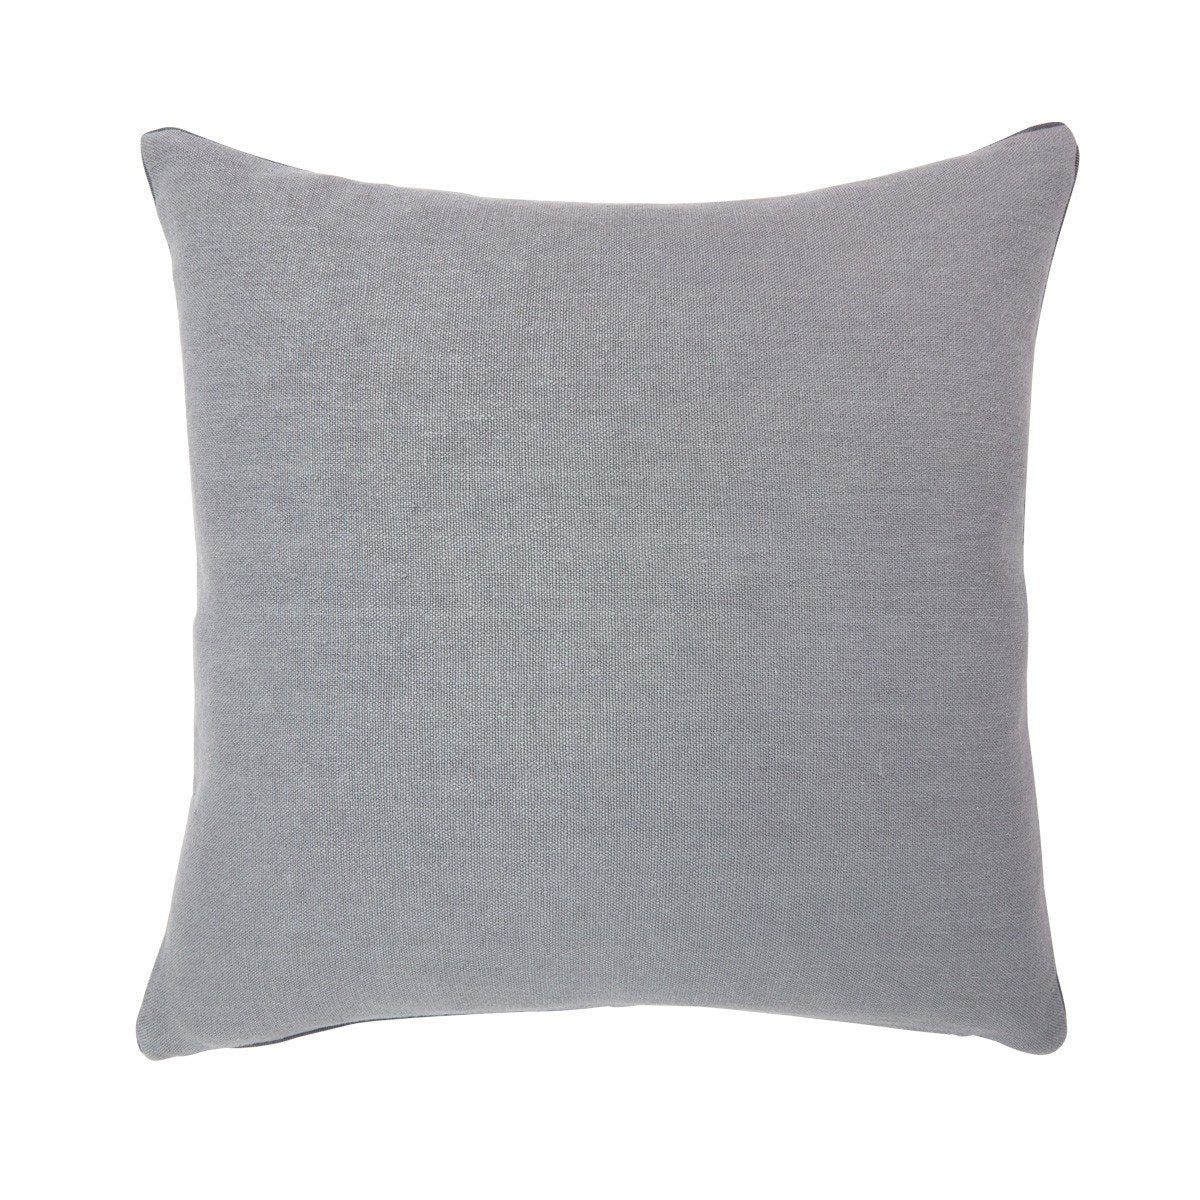 Pigment Zinc Gray Throw Pillow by Iosis | Fig Linens